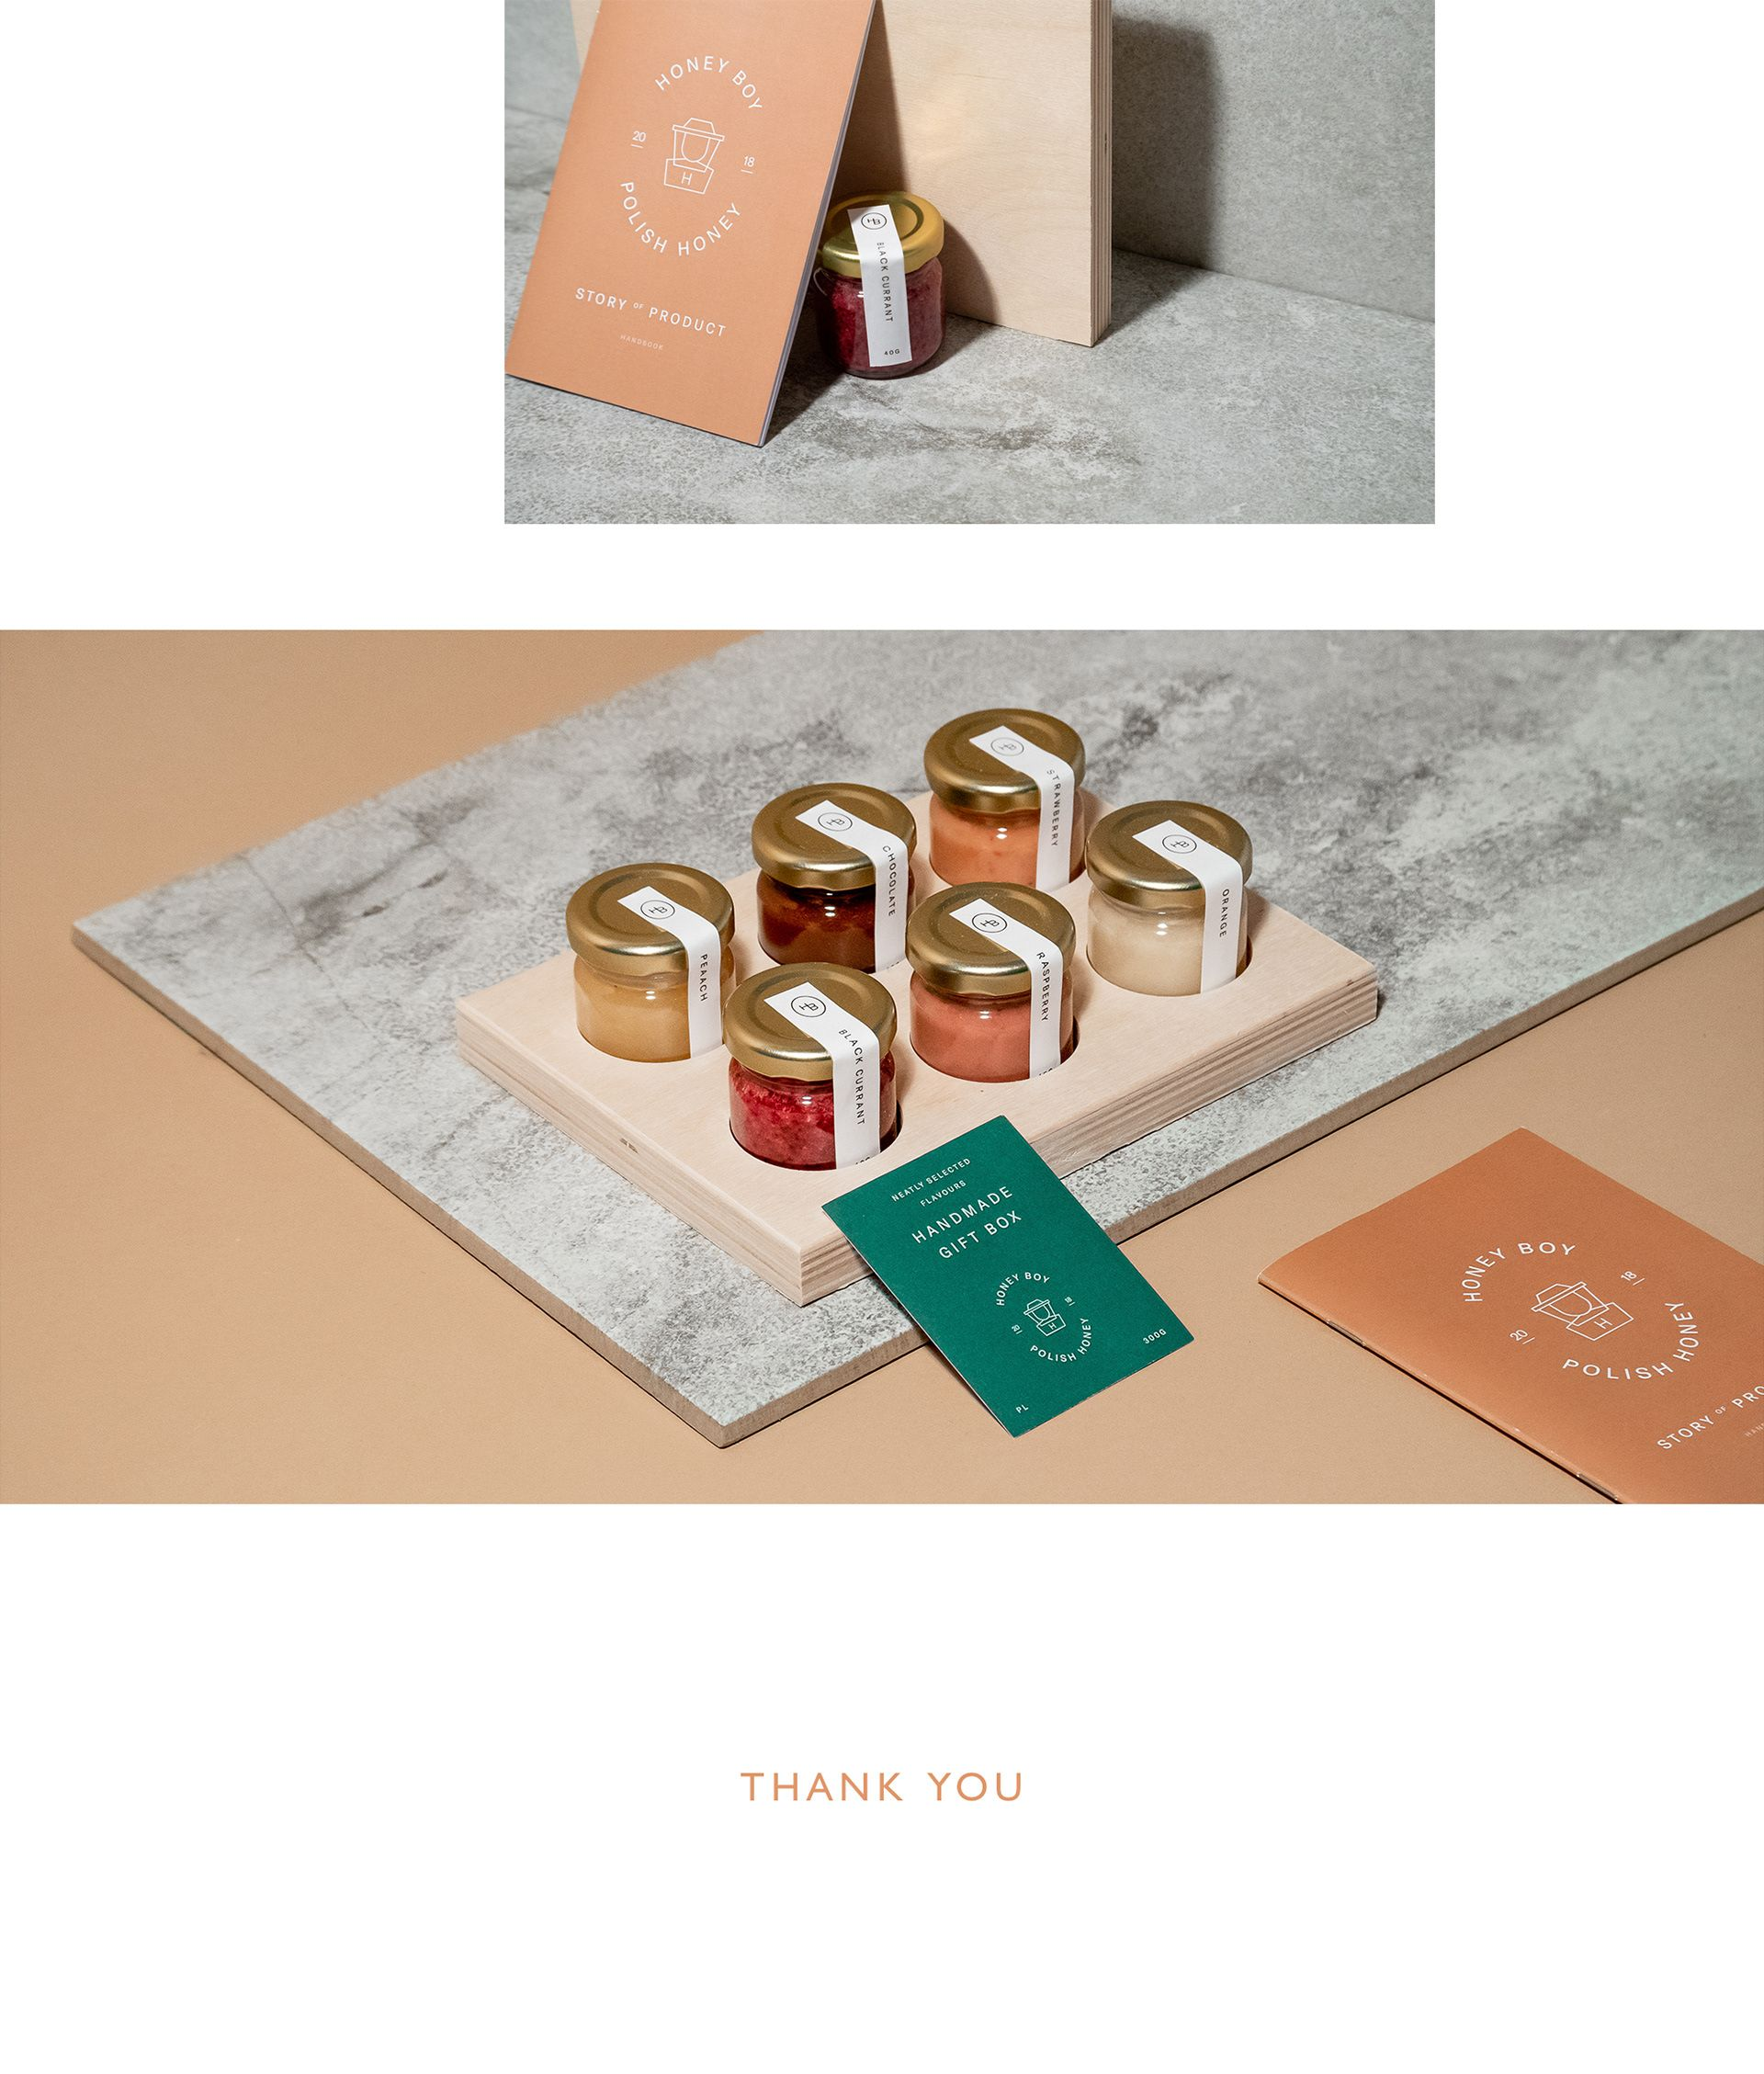 Honeyboy premium honey brand on Behance